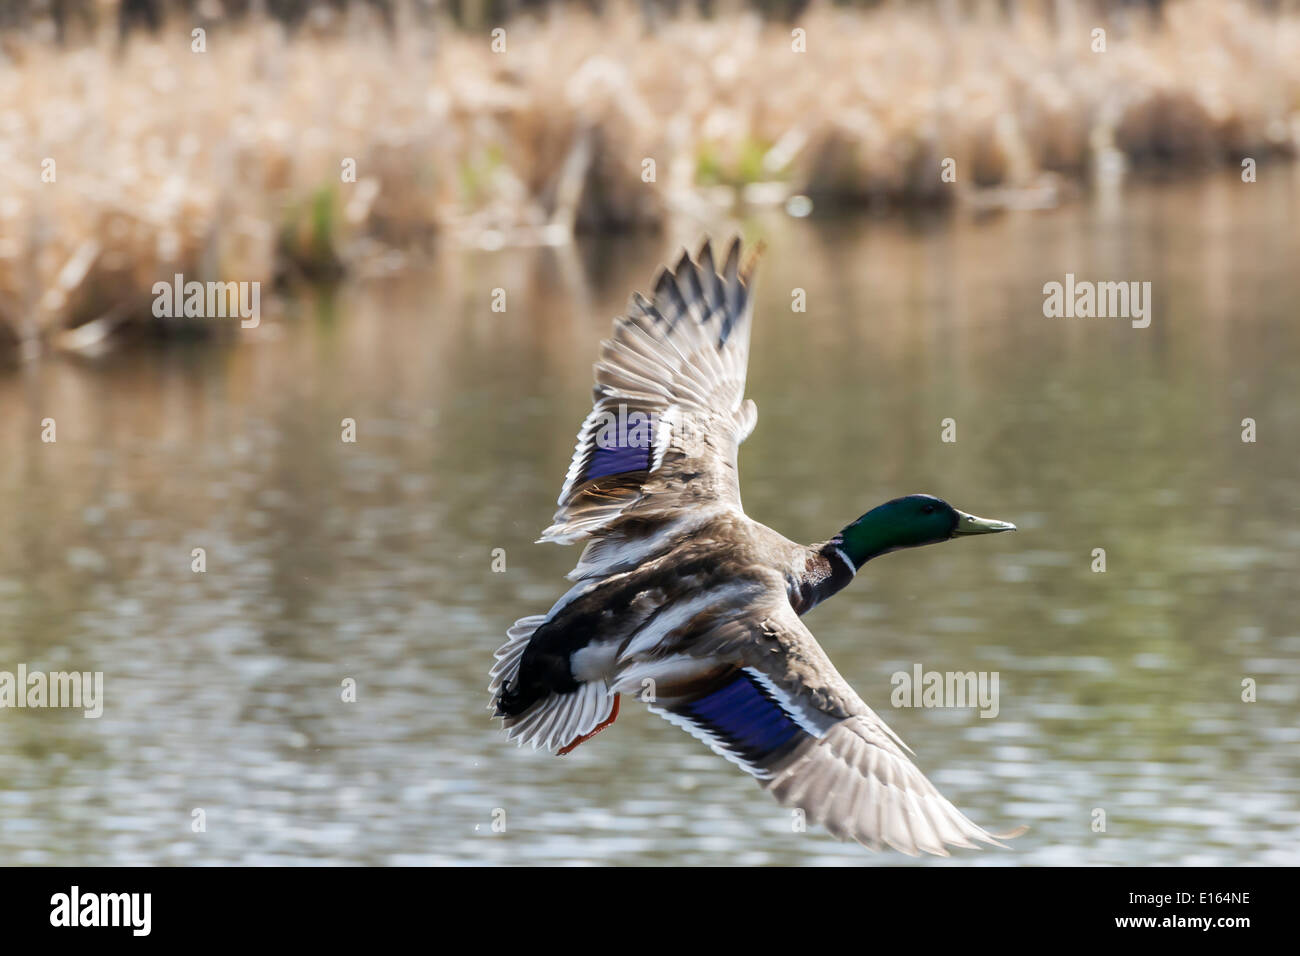 A male Mallard duck flying over a pond - Stock Image